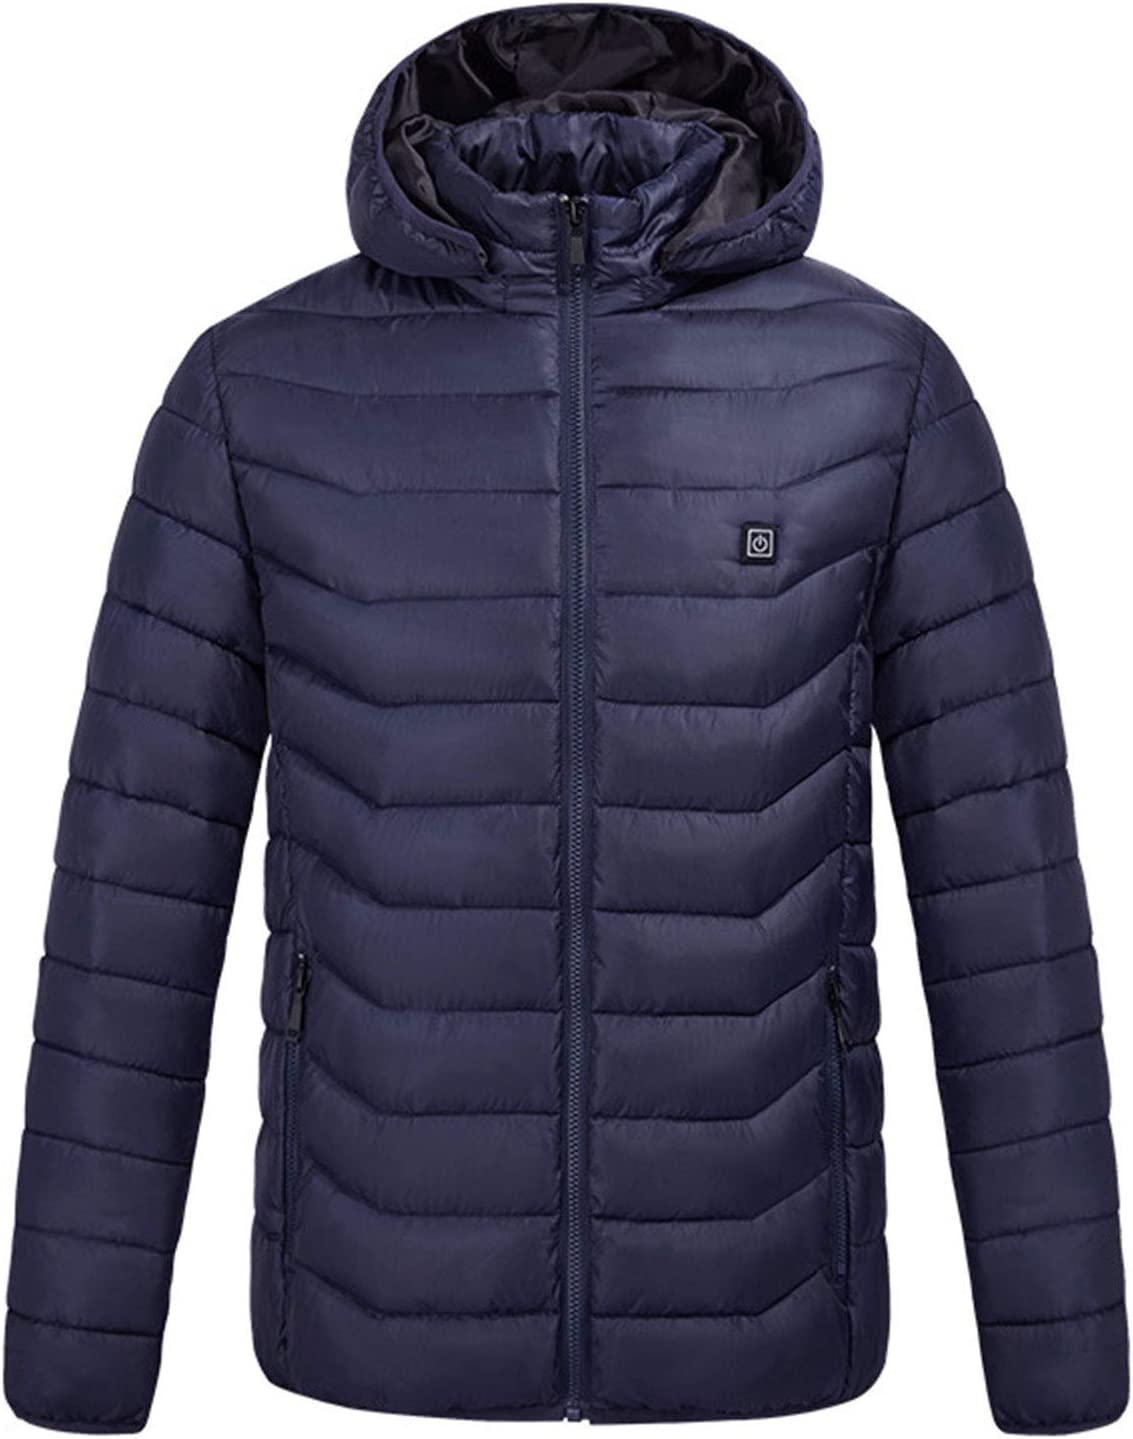 DALLL Heated Jacket Men's Electric Heated Jacket for Outdoor Work and Daily wear,Blue,L